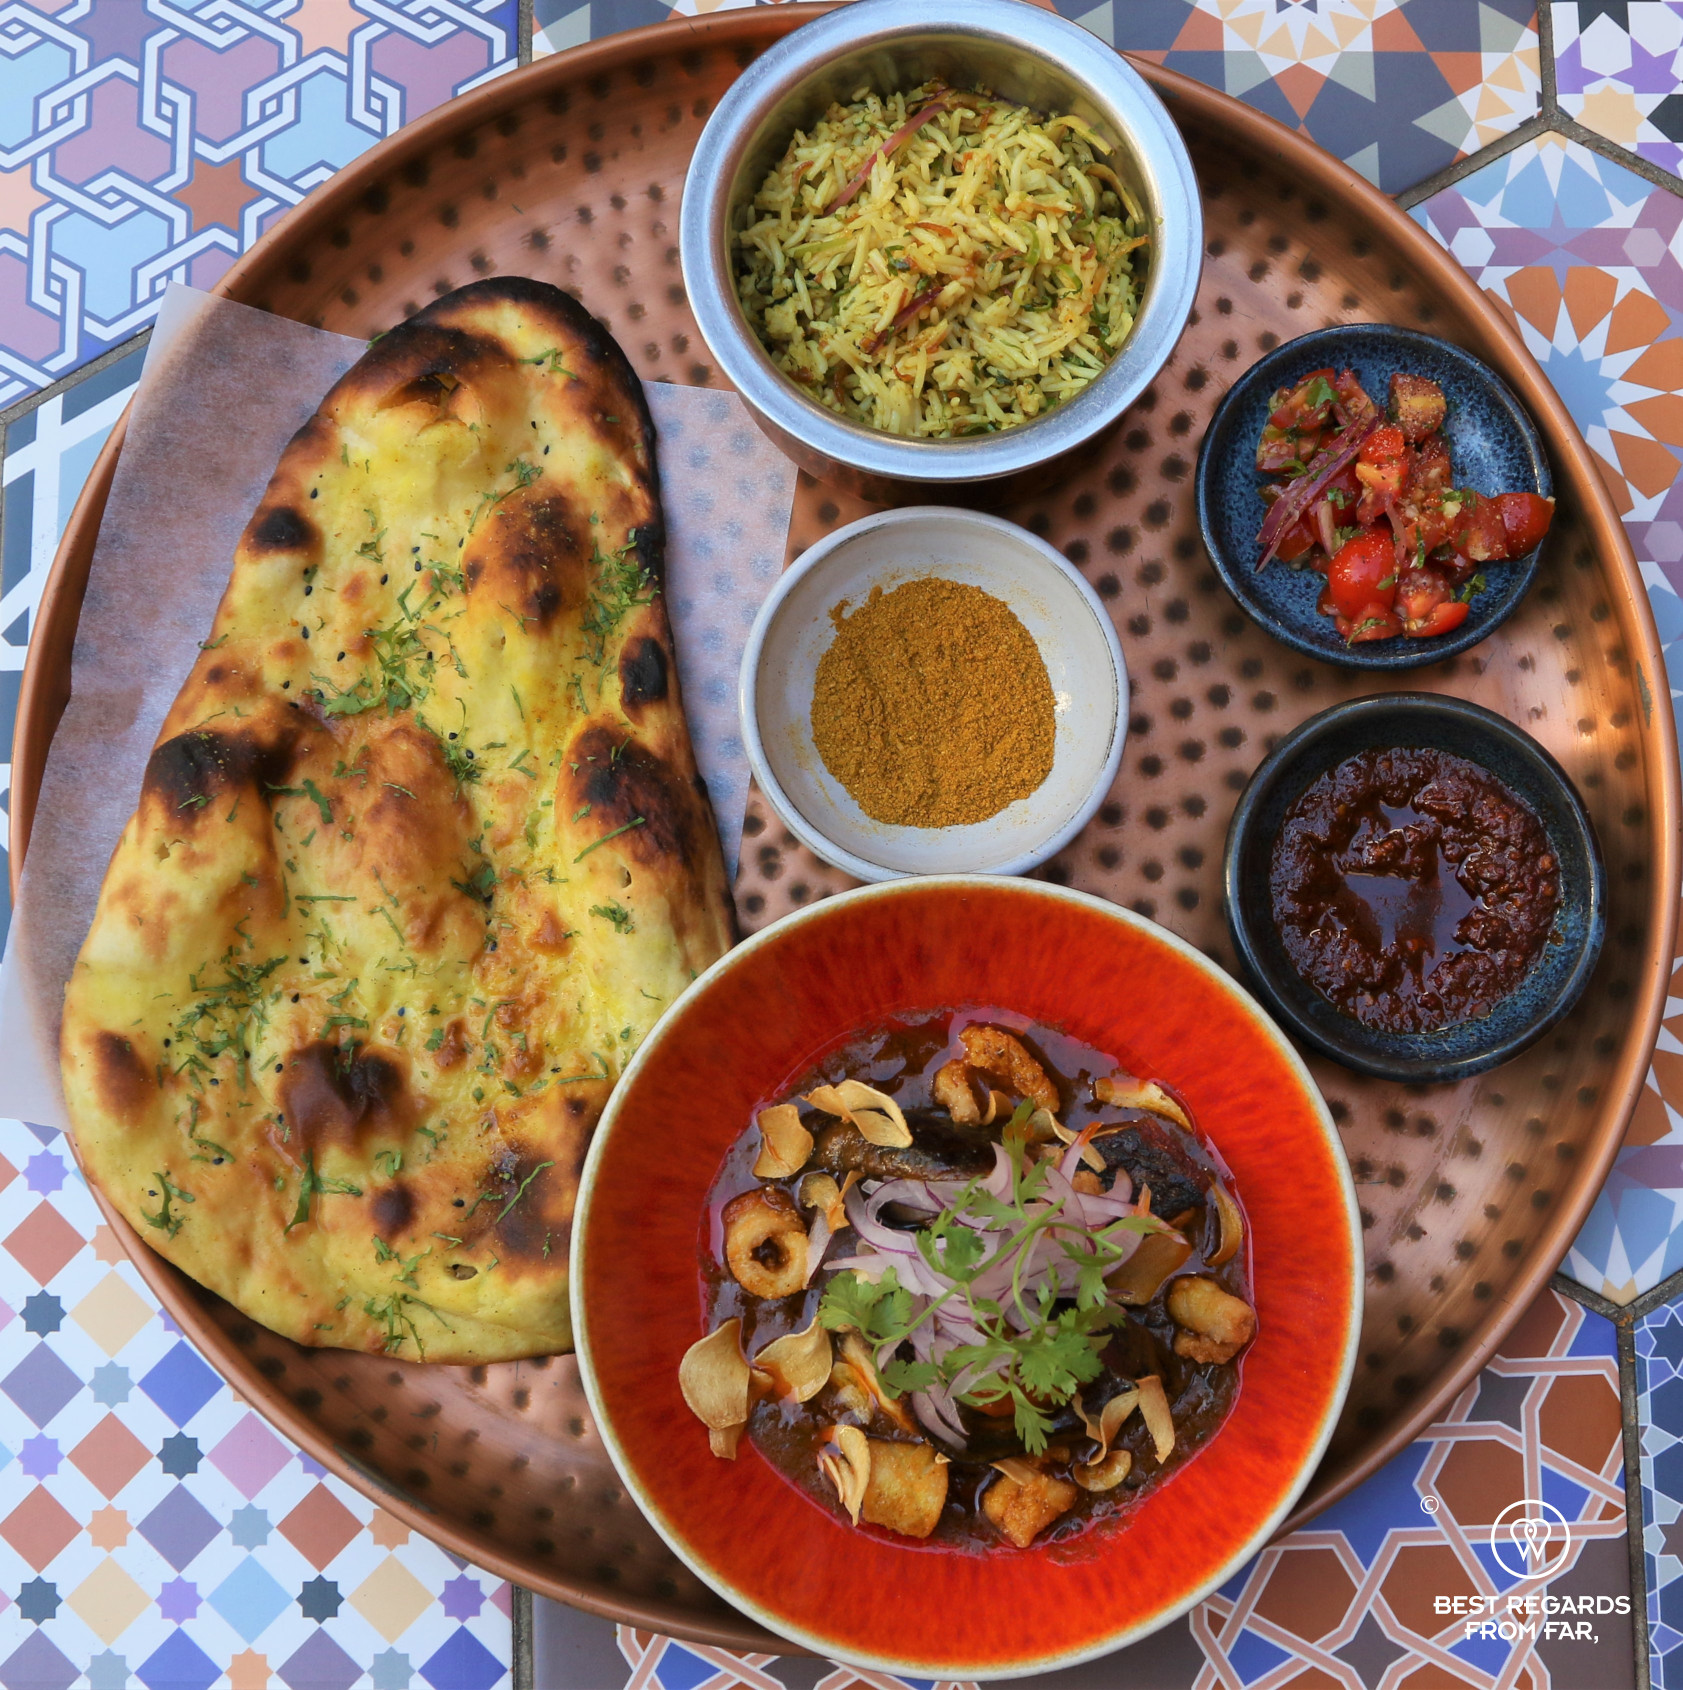 Tray with Indian tapas to share and a nan bread at Thali, Cape Town